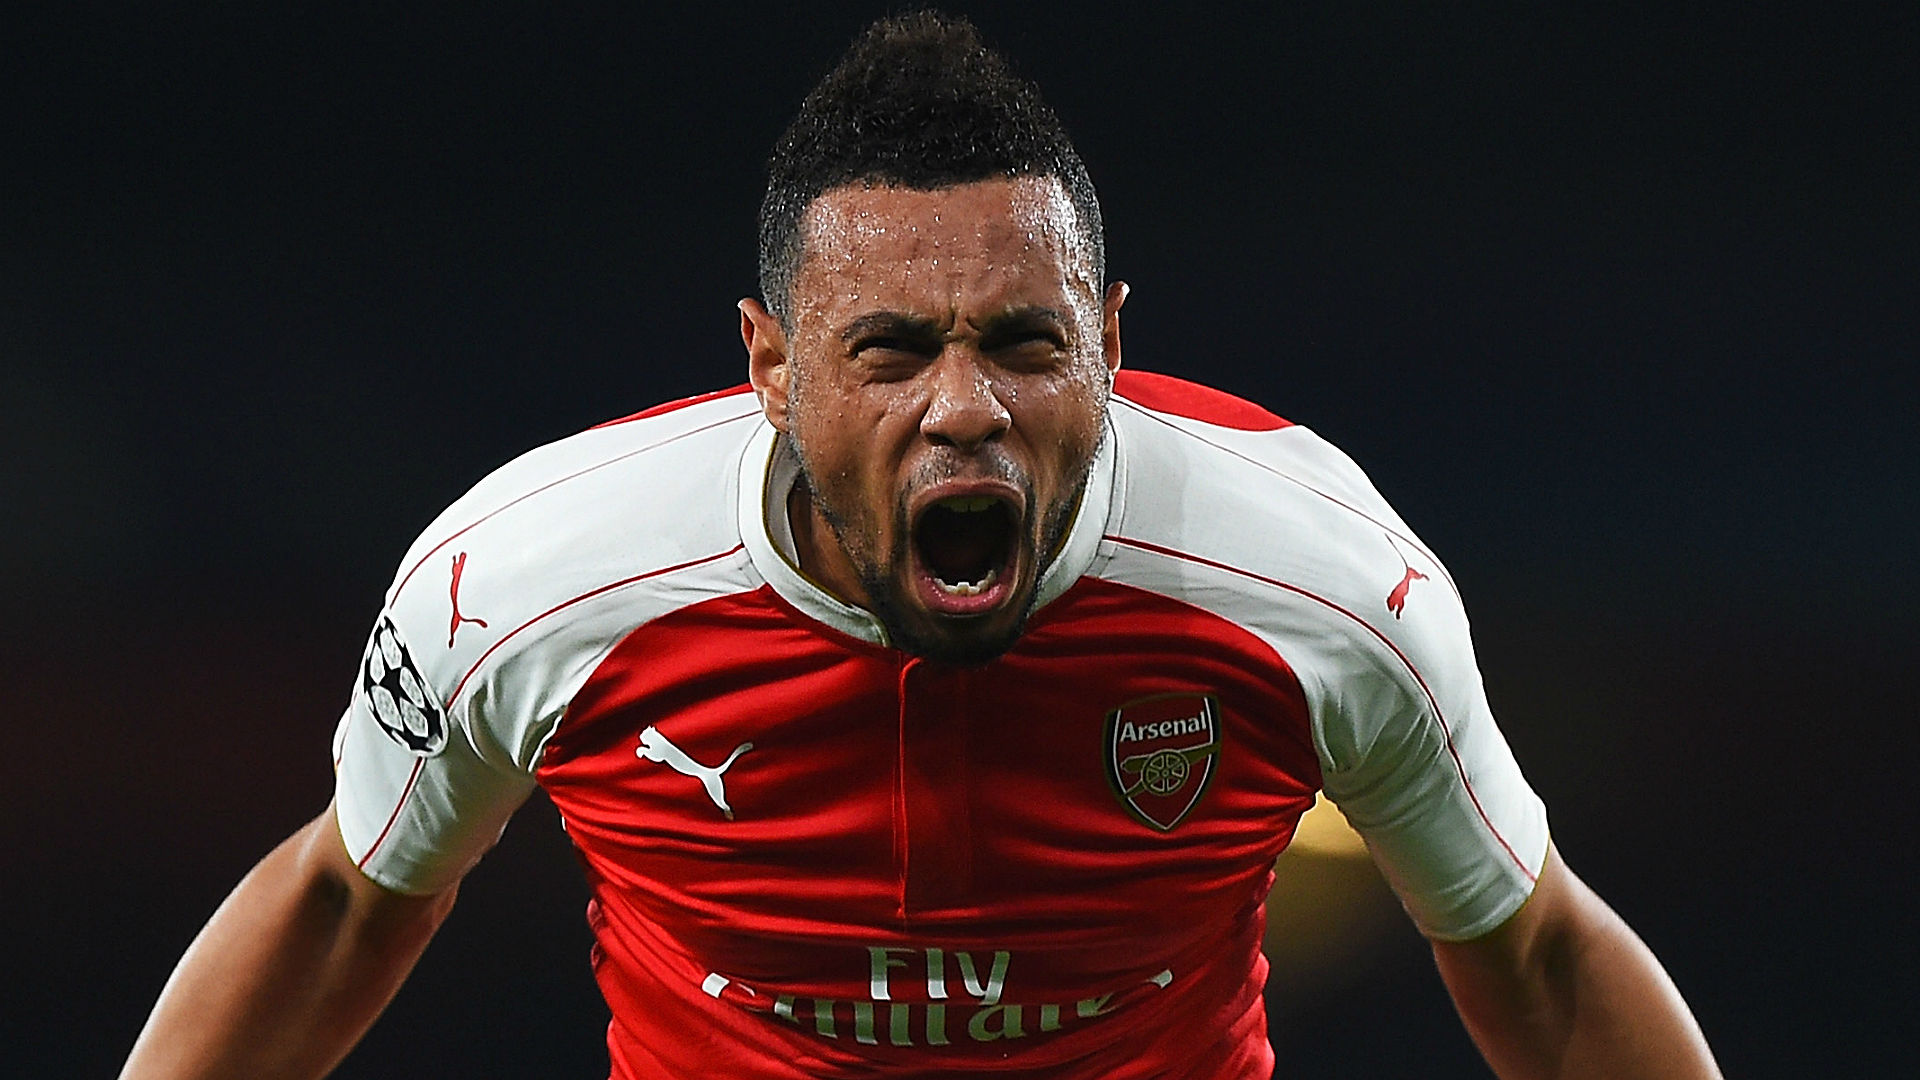 Bayern Munich vs. Arsenal odds and pick – Gunners face enormous task in Germany